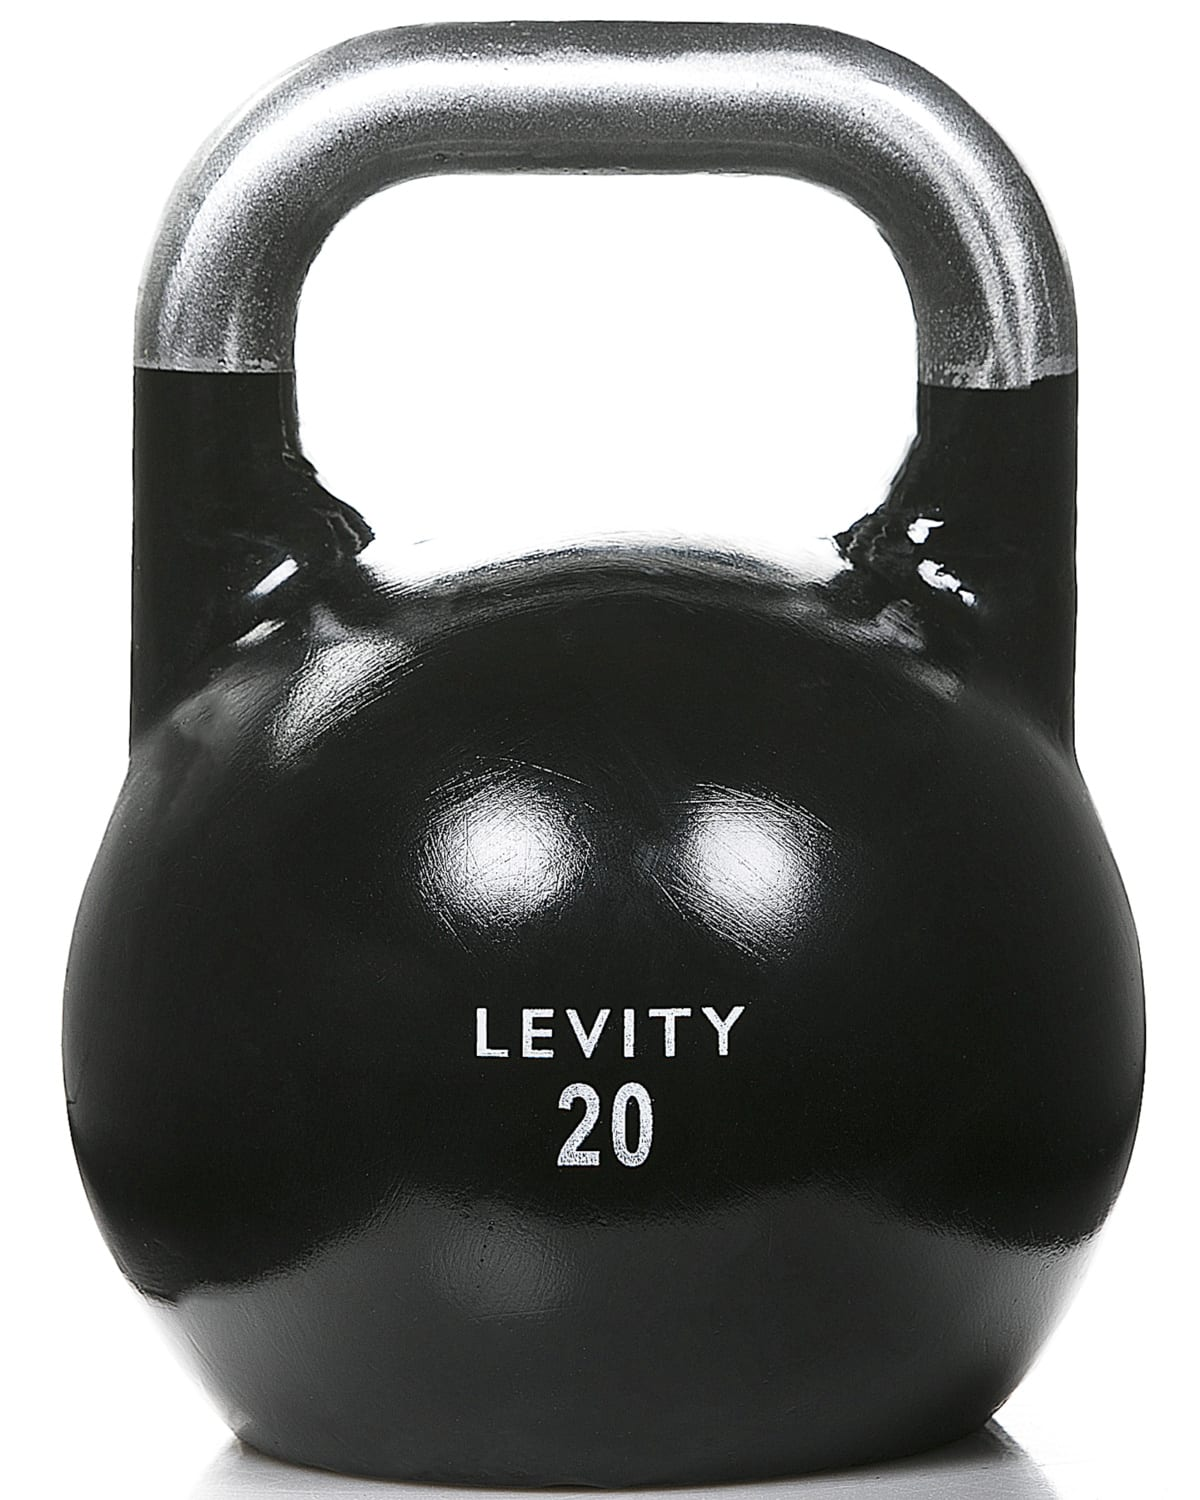 Levity pro competition kettlebell 20kg